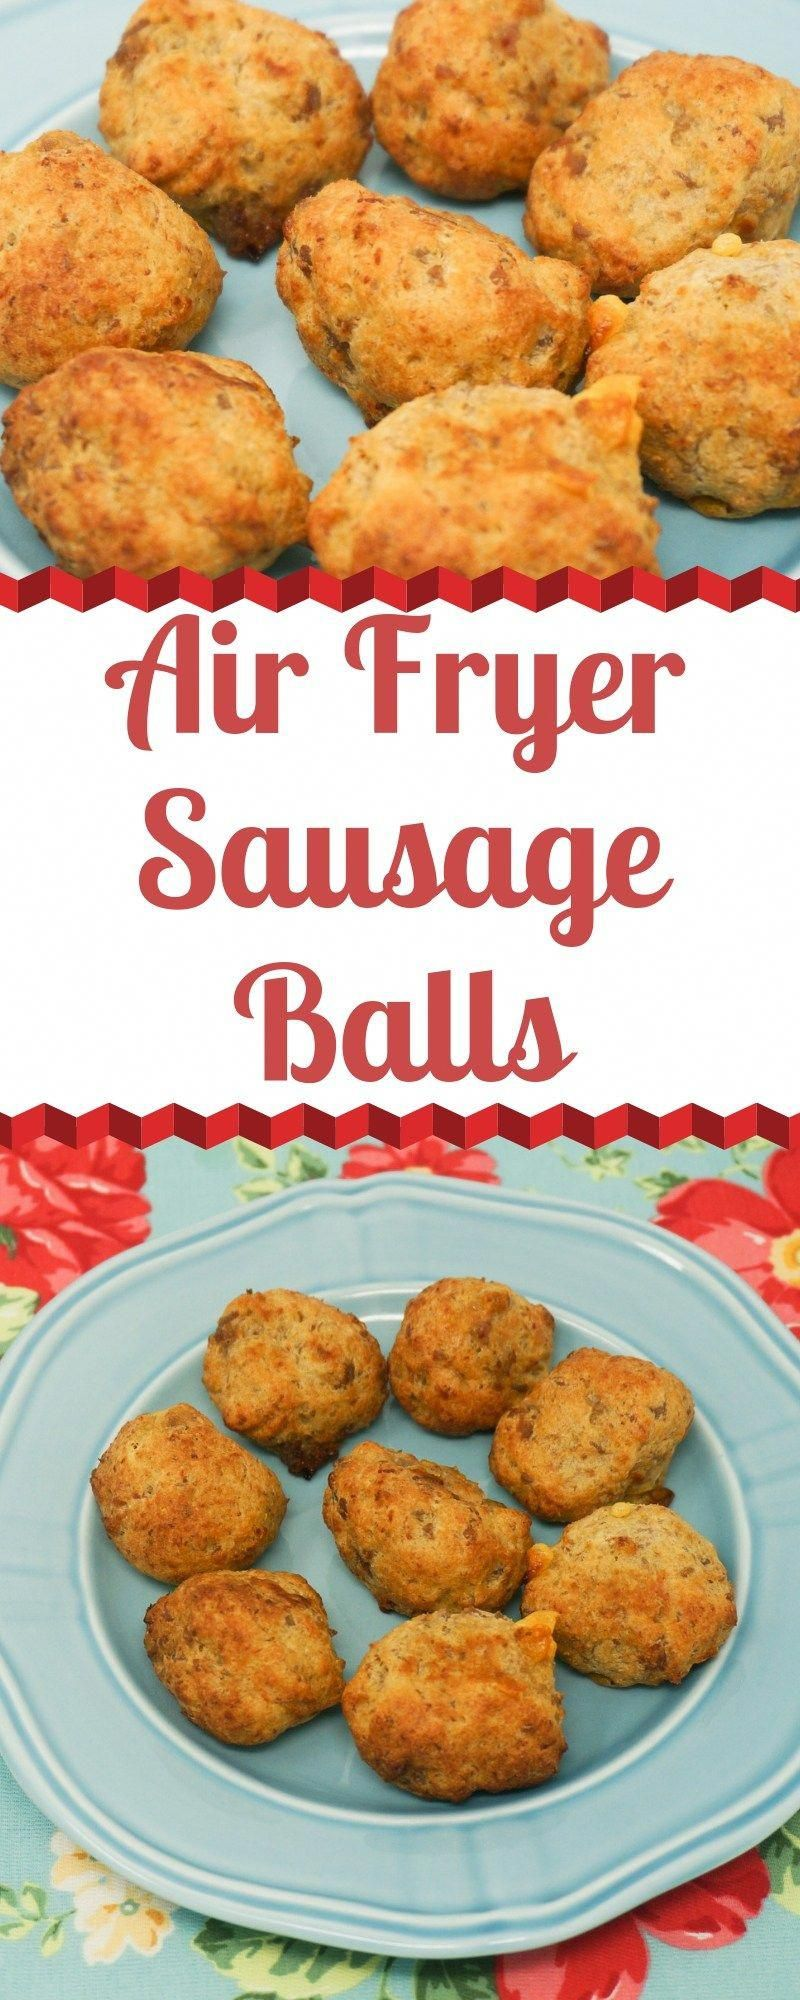 Air Fryer Sausage Balls Recipe Air fryer recipes